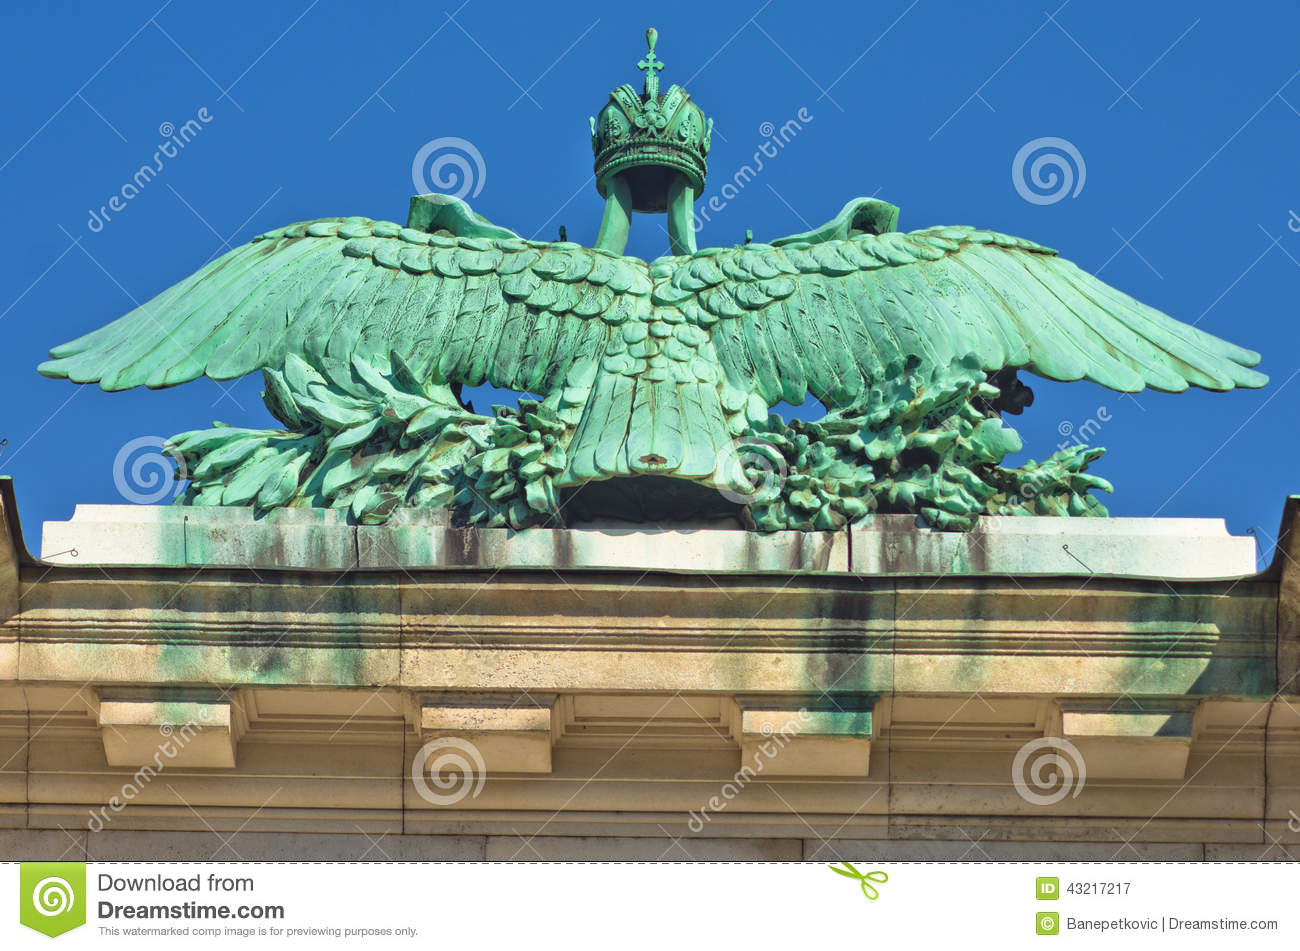 Architectural and imperial heraldry details on Hofburg palace in Vienna